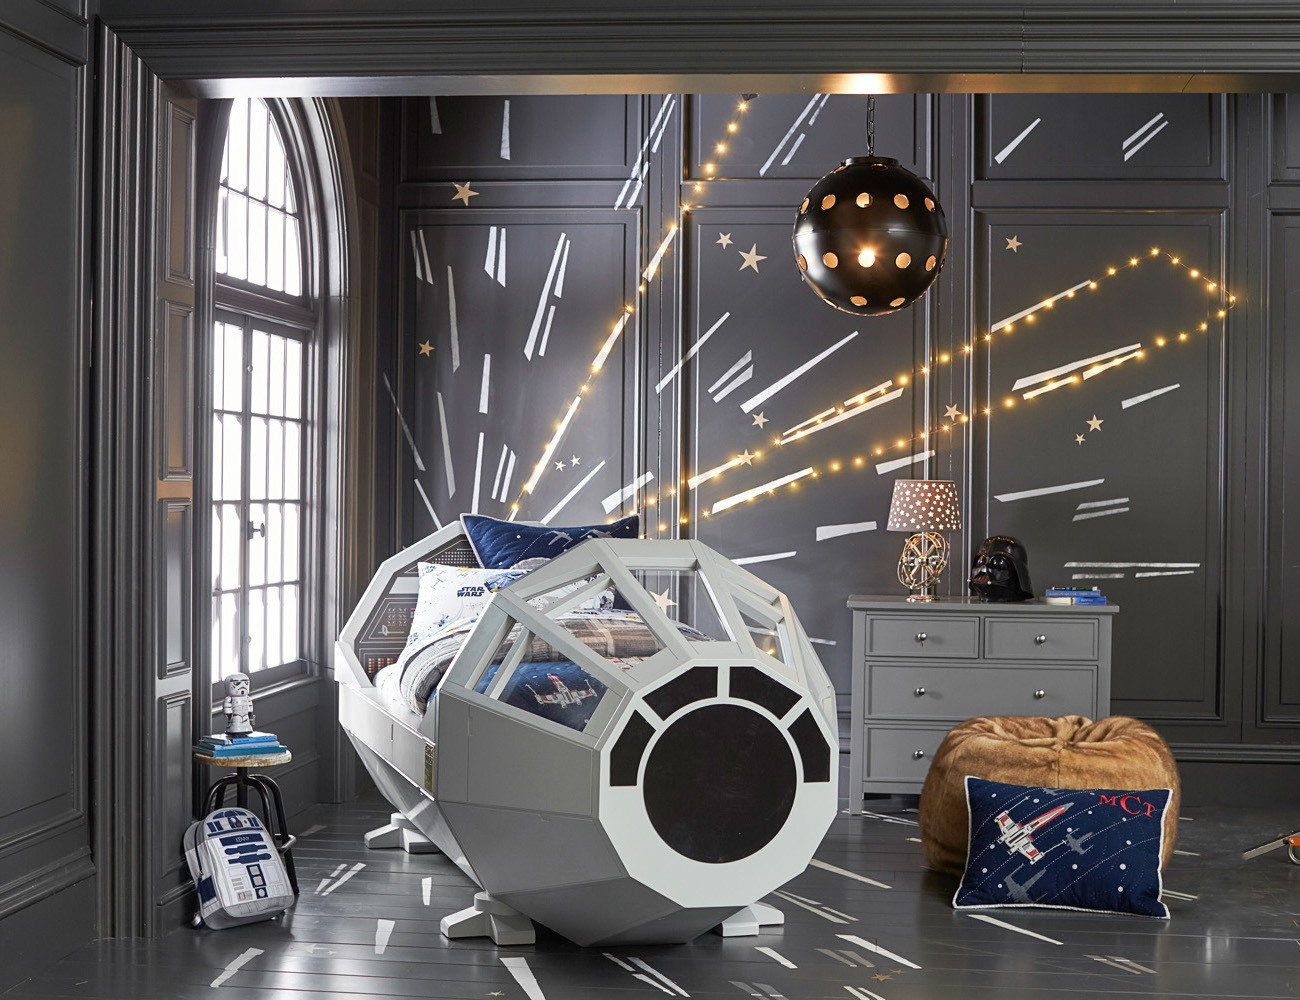 Star Wars Millennium Falcon Bed by Pottery Barn